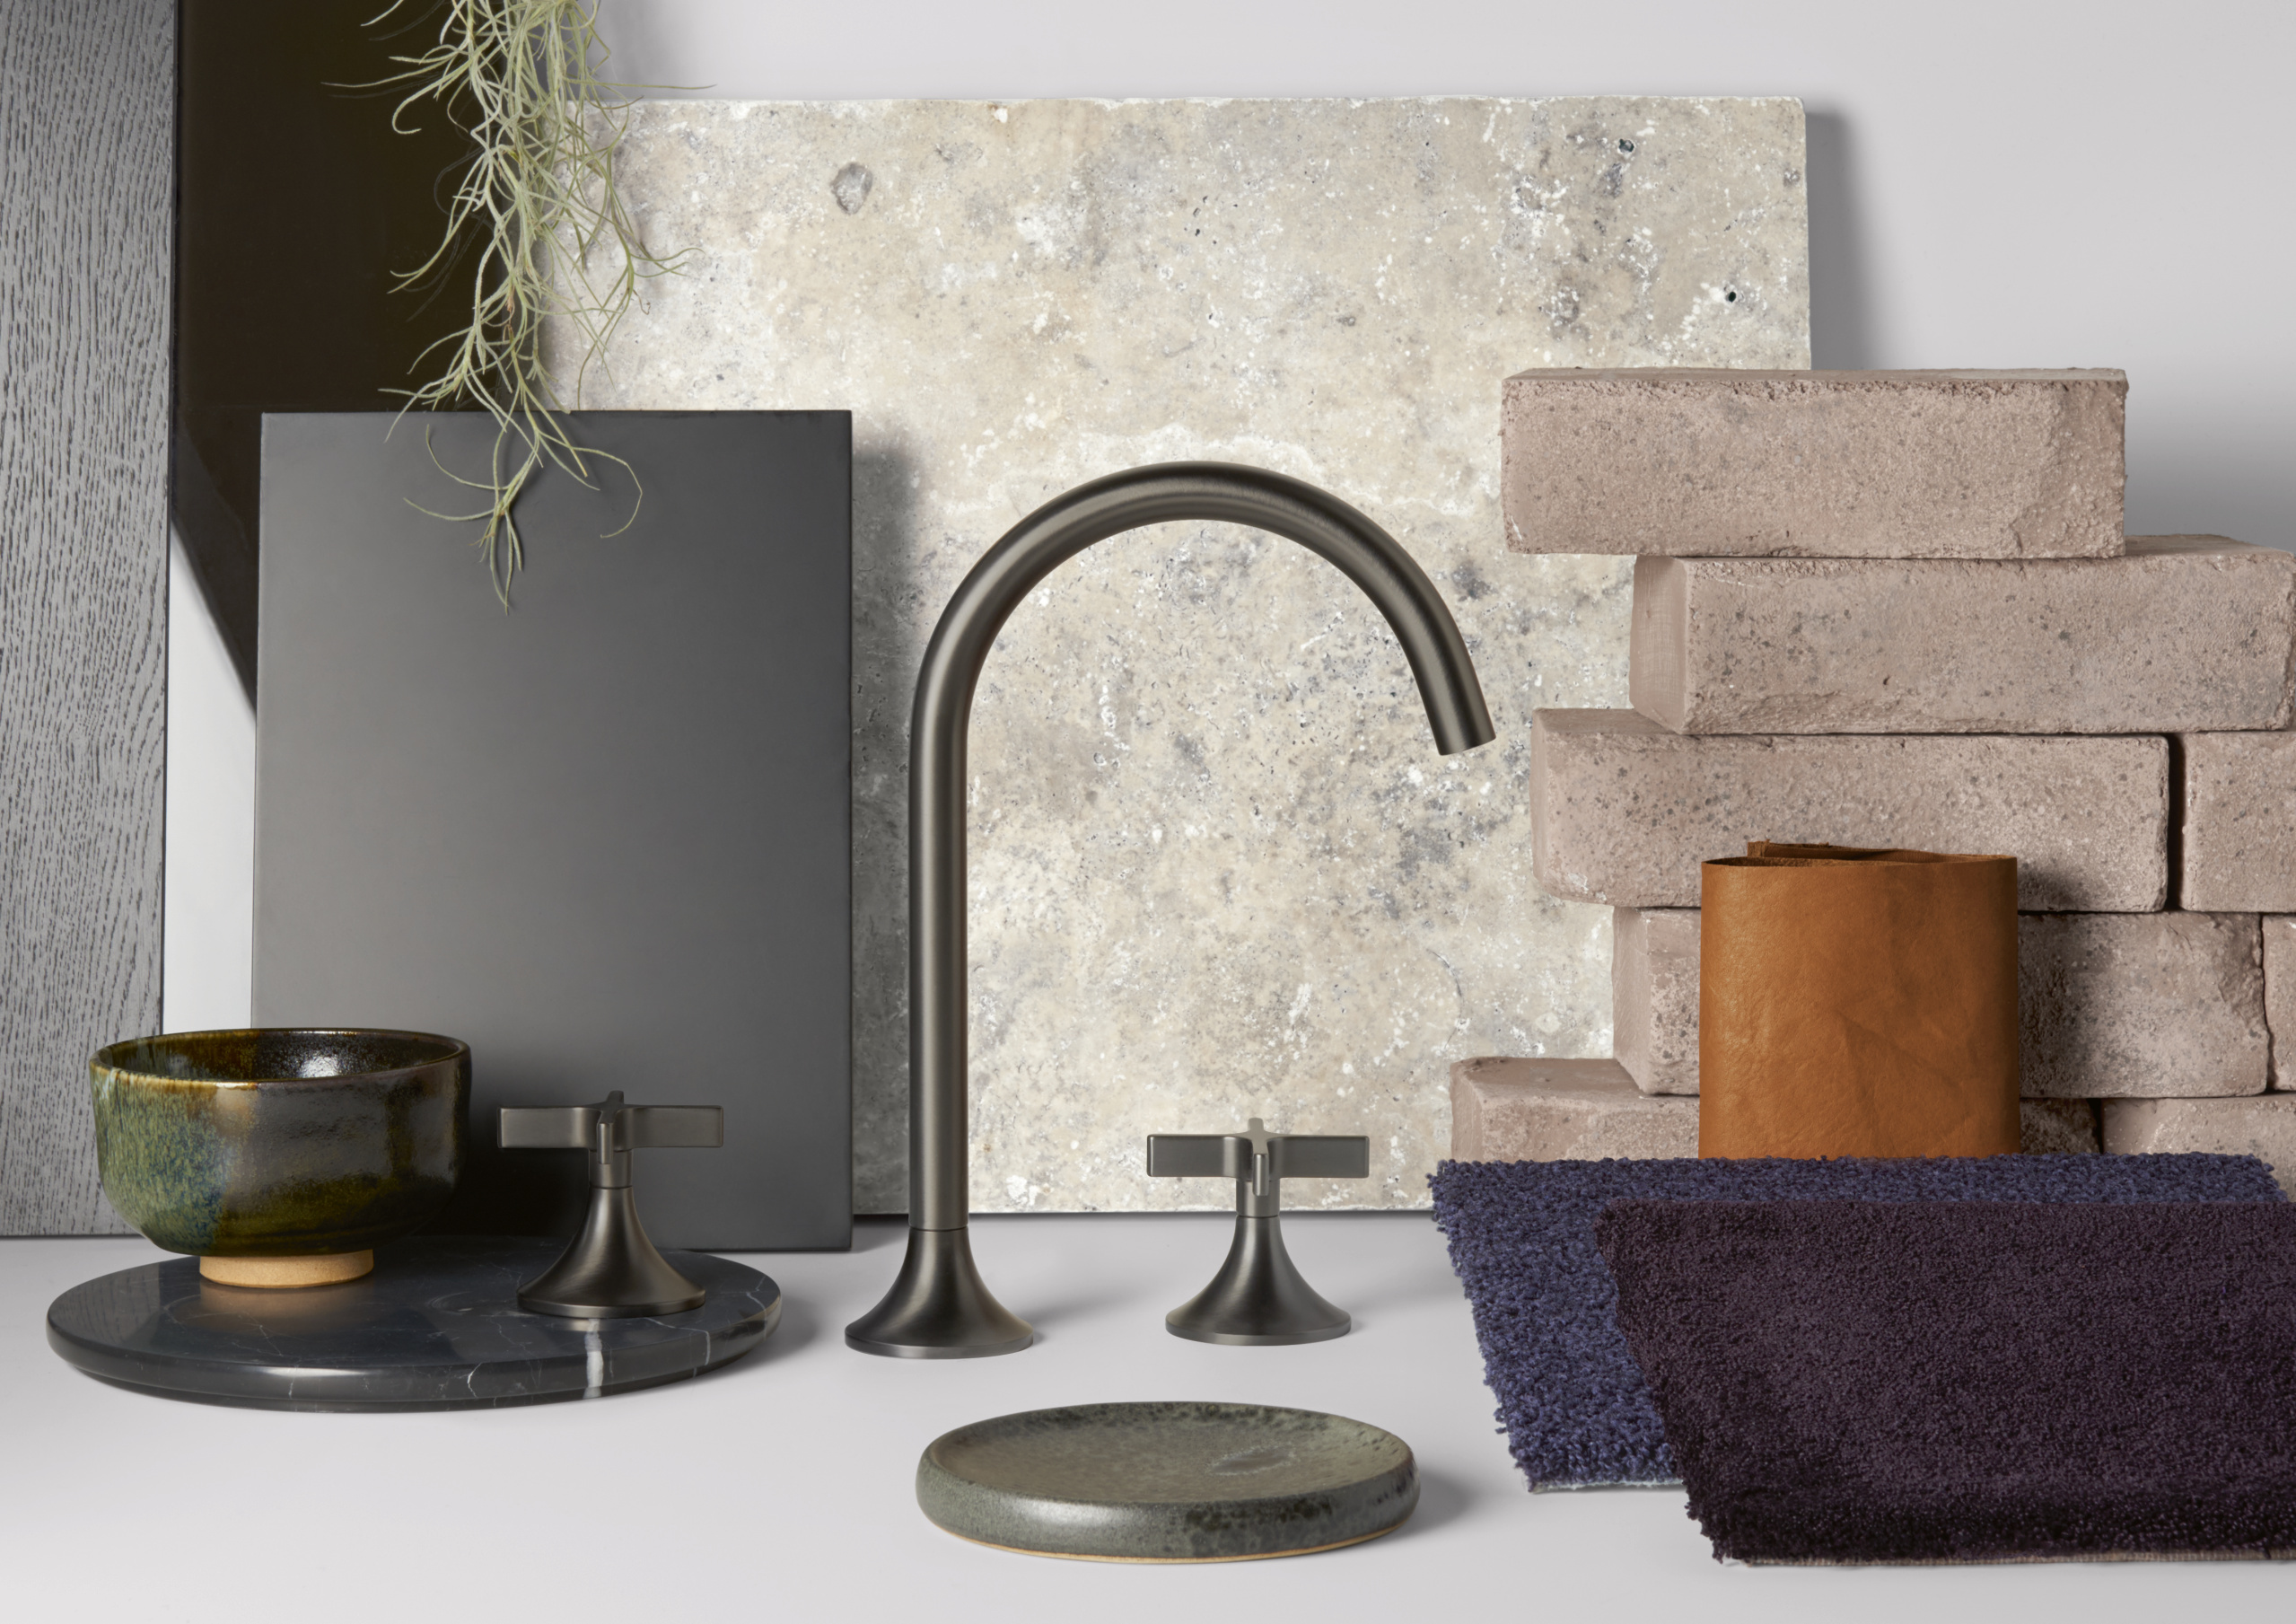 dornbracht ritmonio sigma phylrich sinks faucets disegno tiles nortesco plus faucet perrin caml rubinet rowe and tomlin